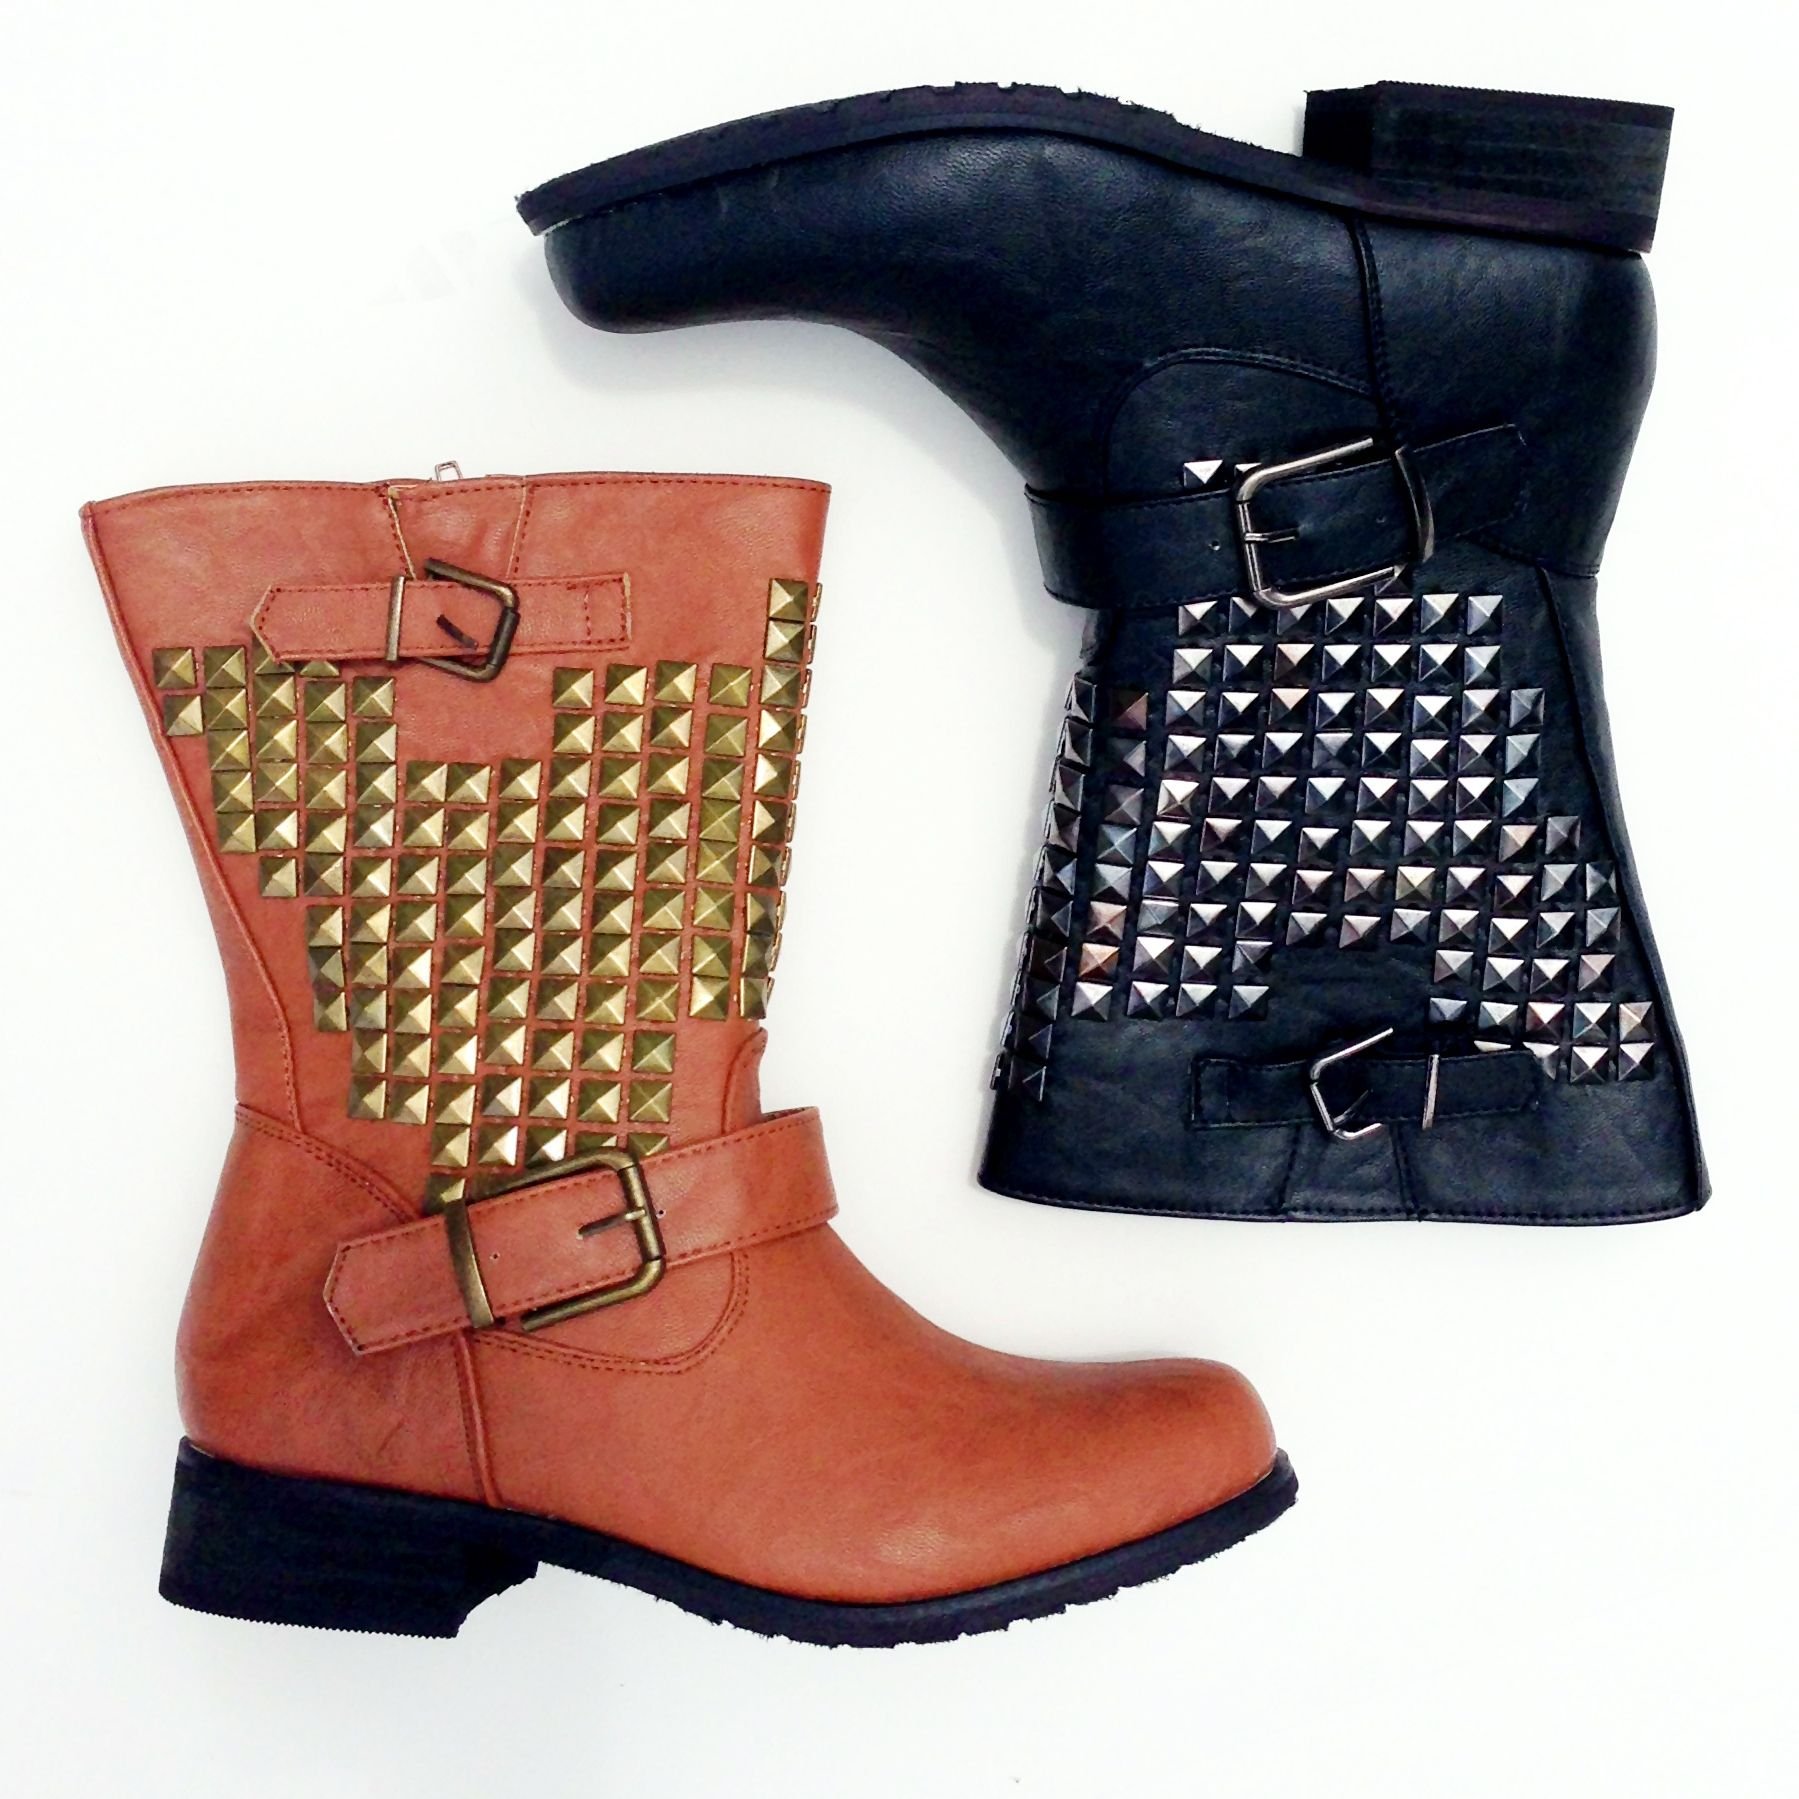 The must have boots of the season! Now available at 4th for only $29.99!  407.878.6656 to order!